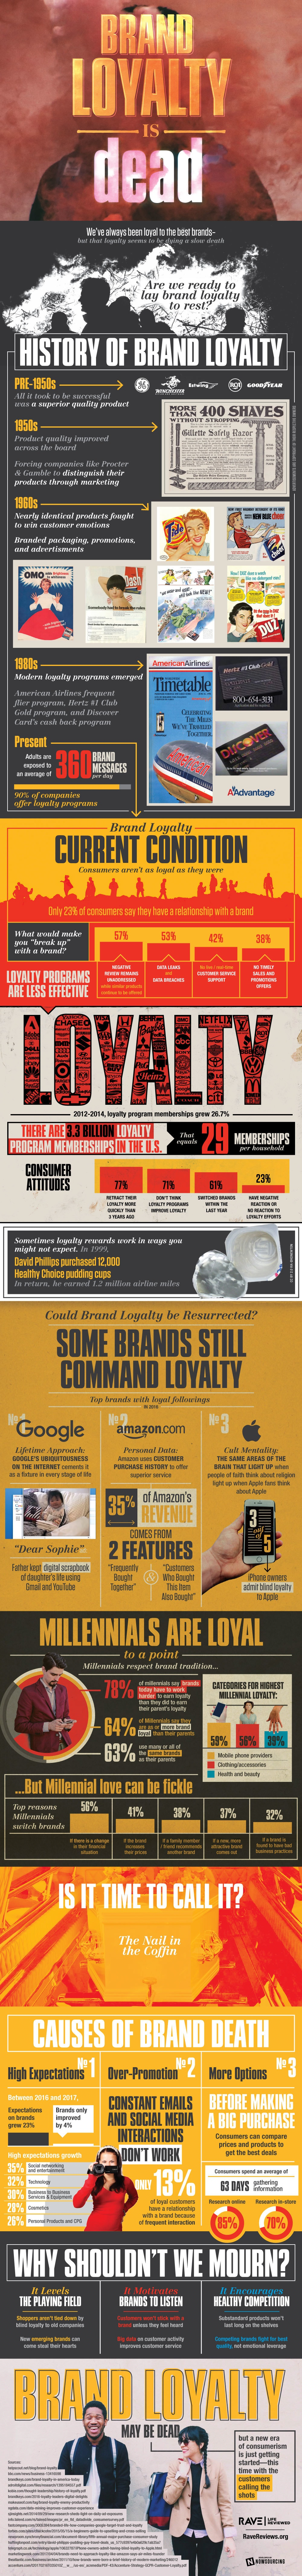 Brand Loyalty Is Dead via Brian Wallace